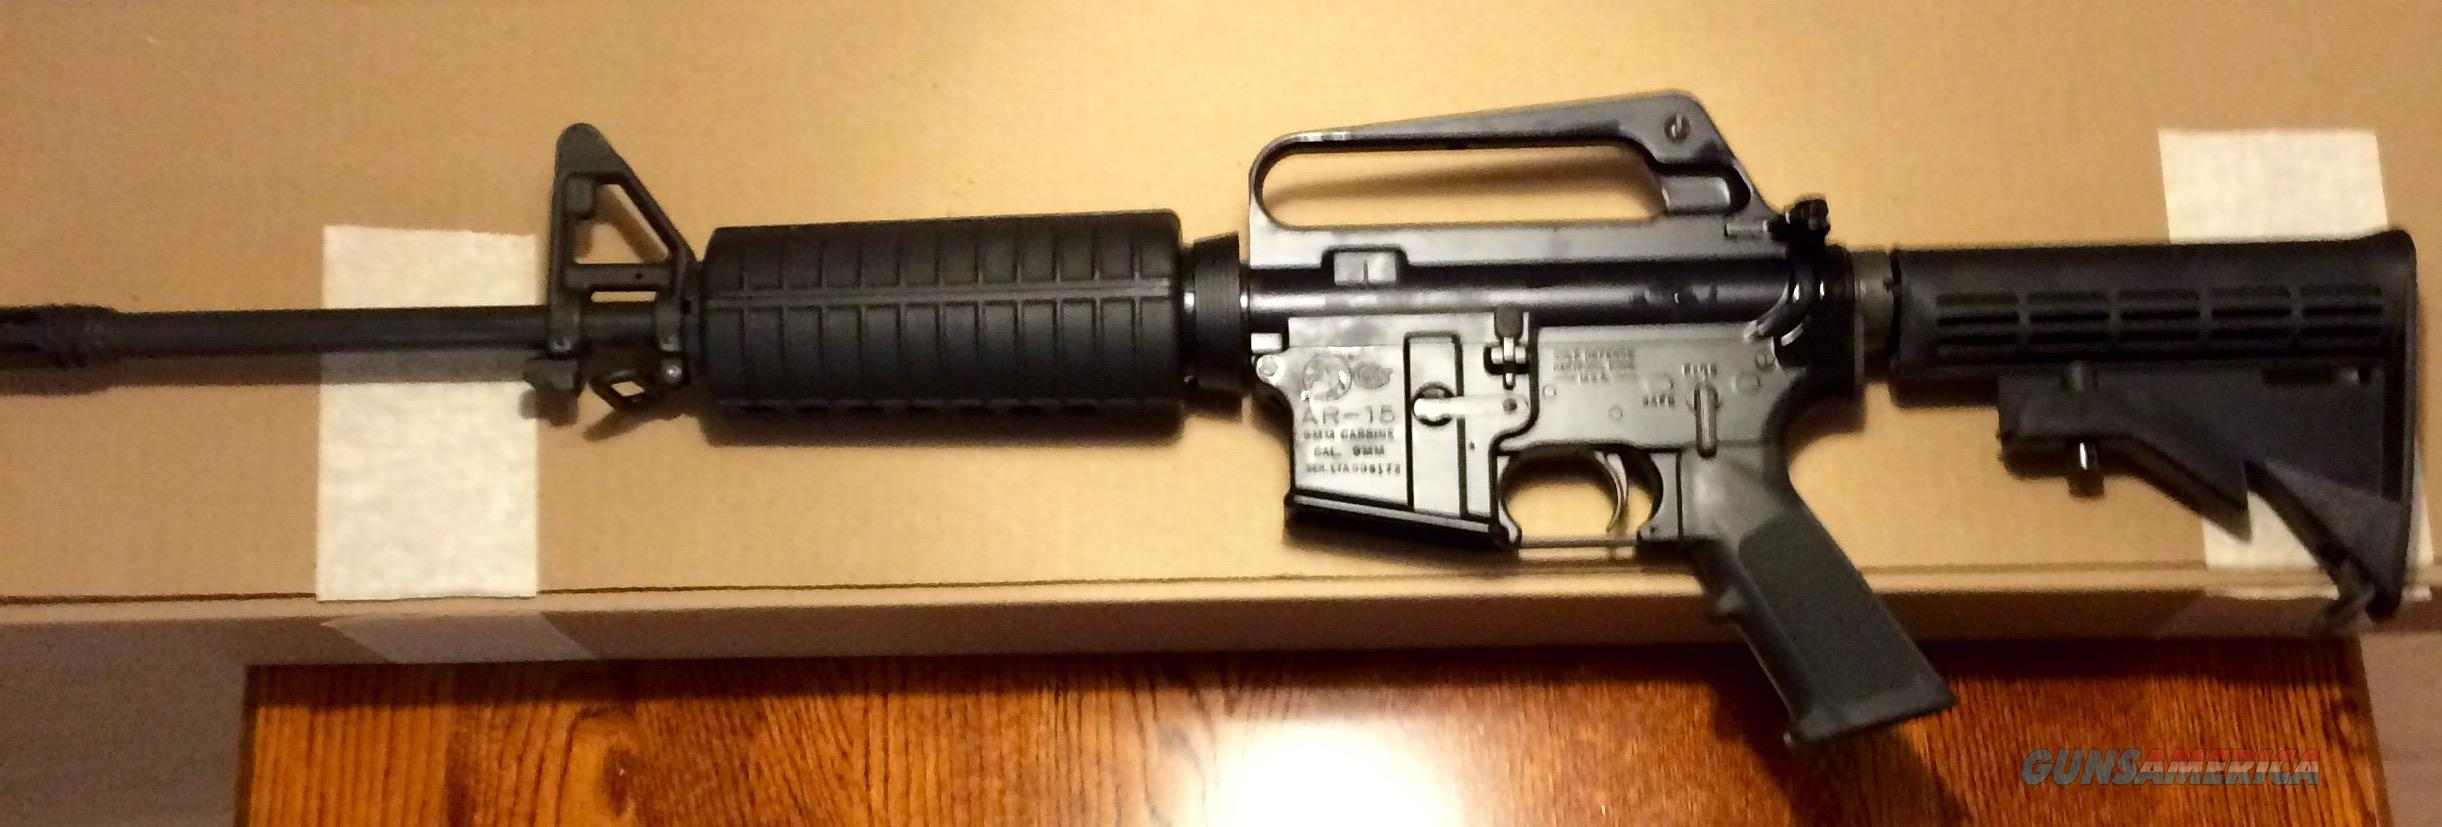 COLT AR15 Carbine 9mm 6450 LE marking NEW NIB  Guns > Rifles > Colt Military/Tactical Rifles